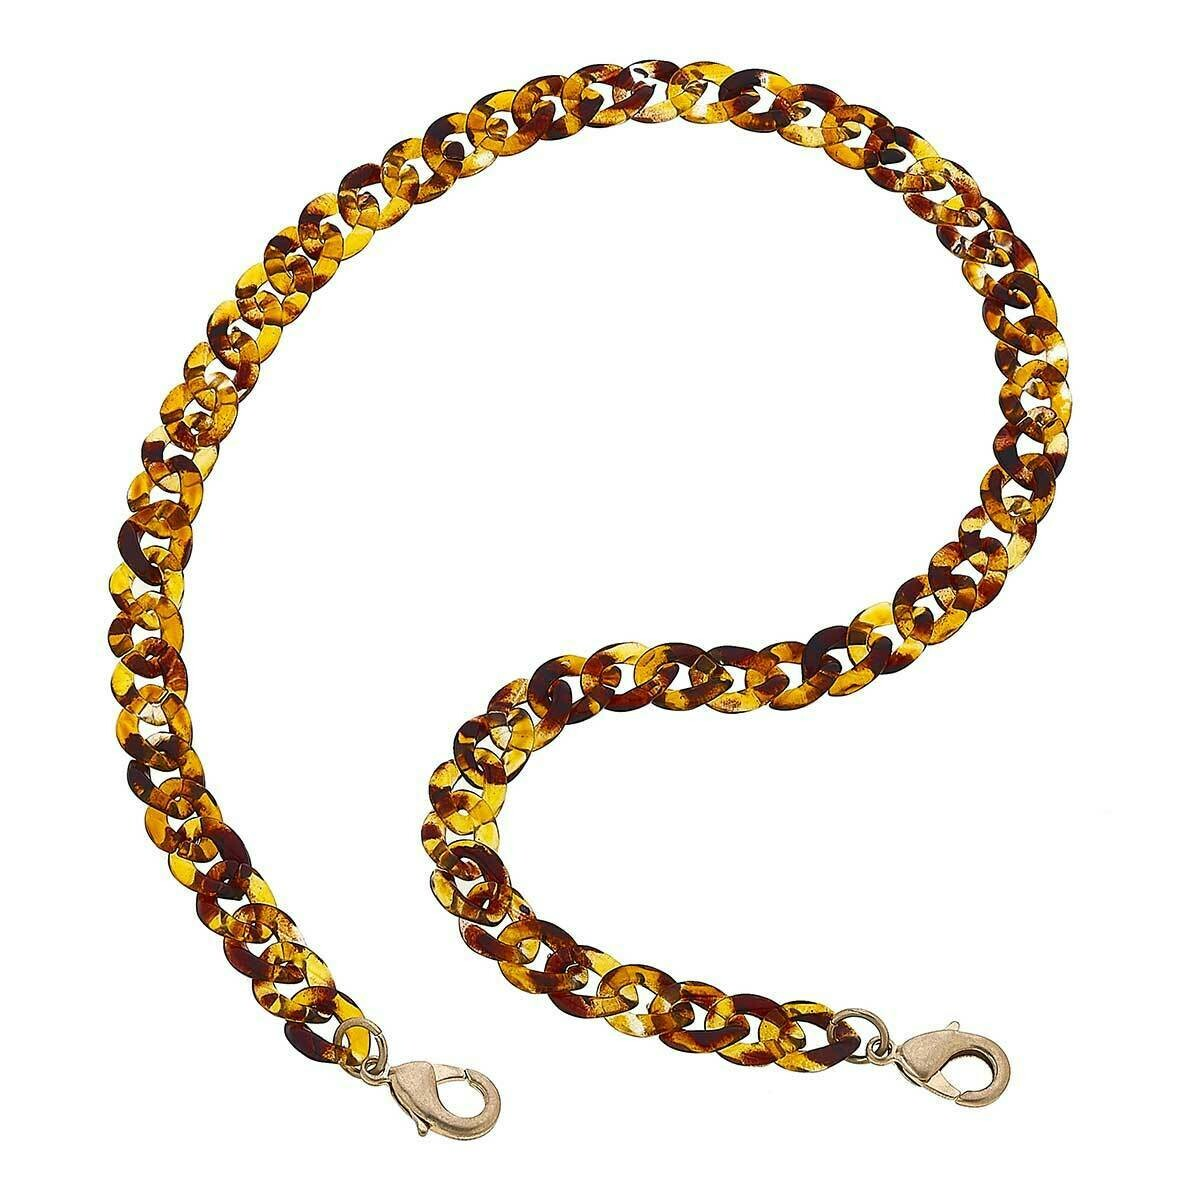 Chain Mask Necklace 22019M-TO-20